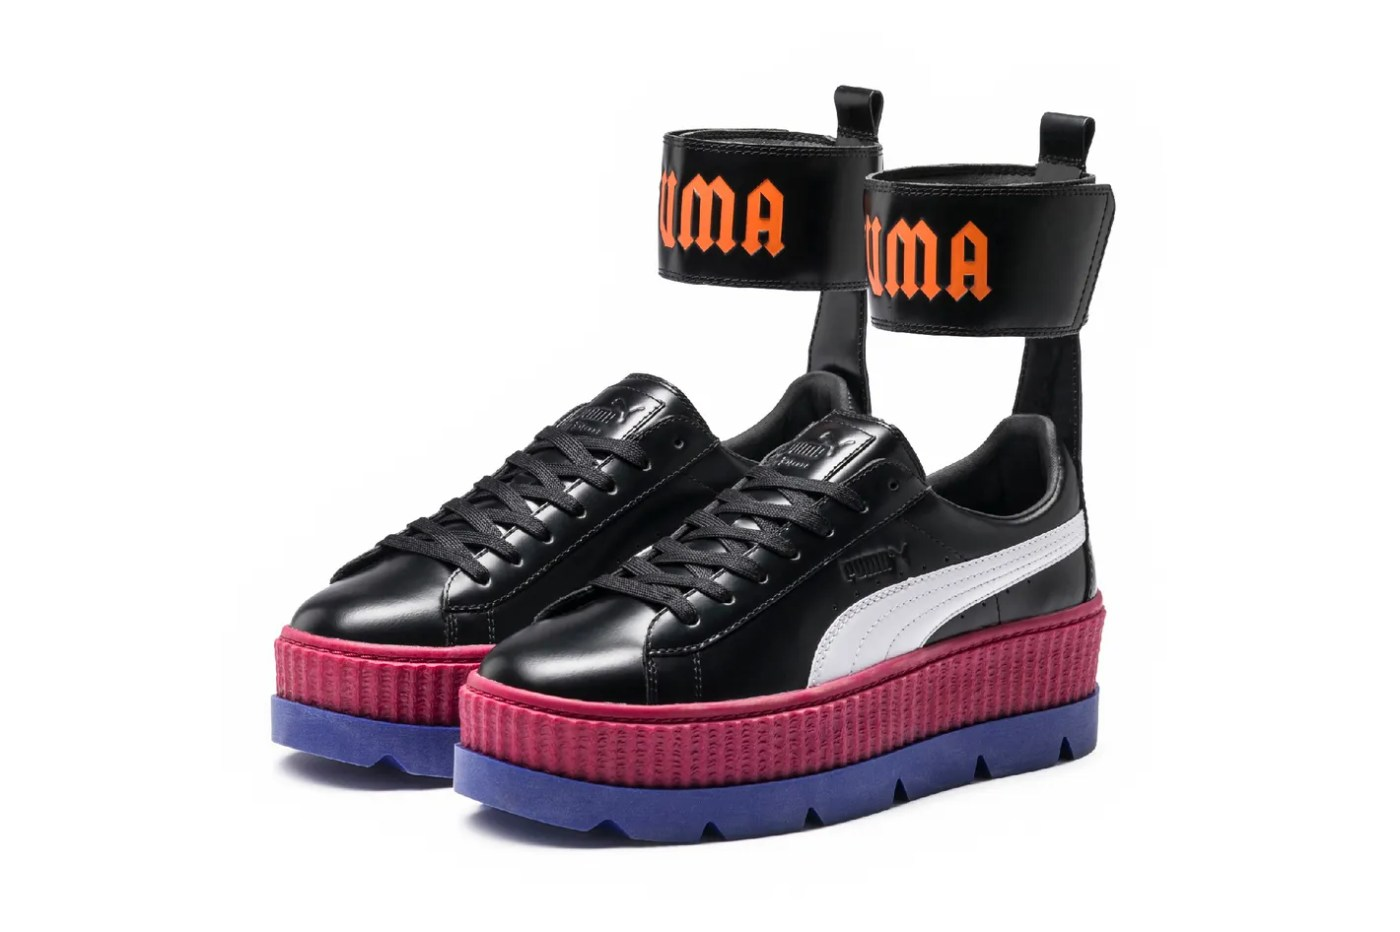 Image result for creepers fall 2017 fenty university